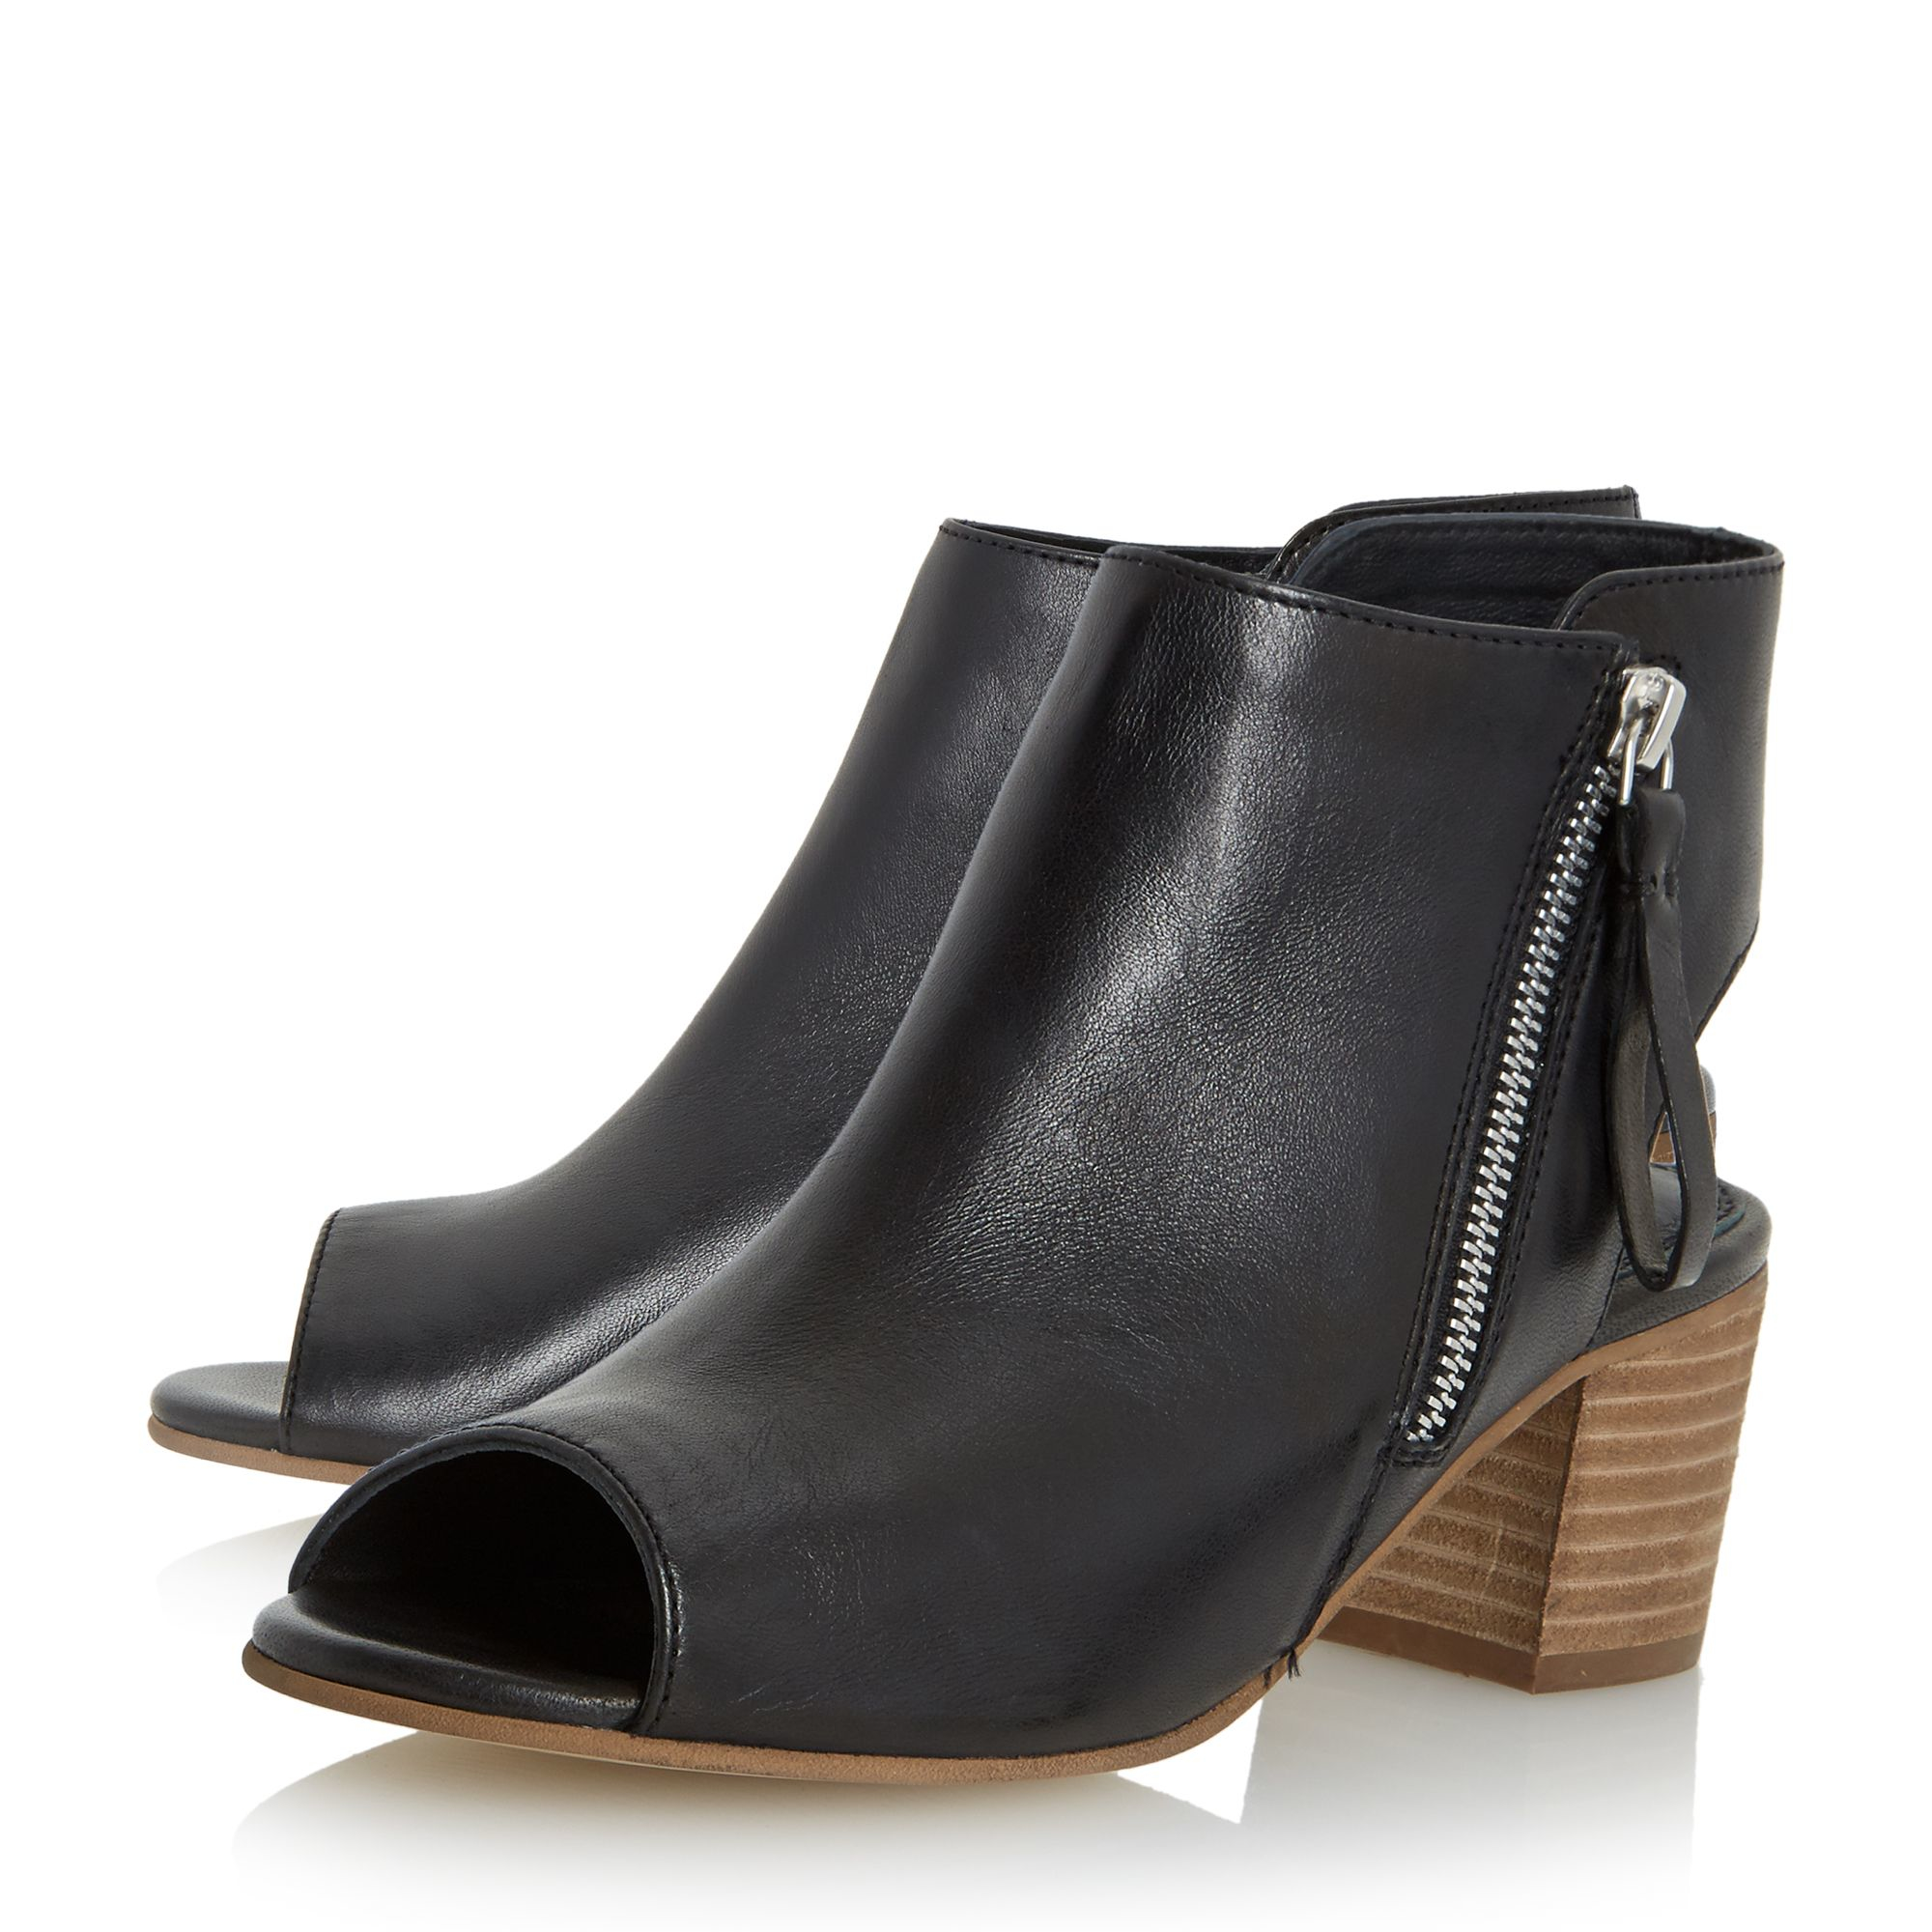 dune joselyn peep toe ankle boot sandals in black lyst